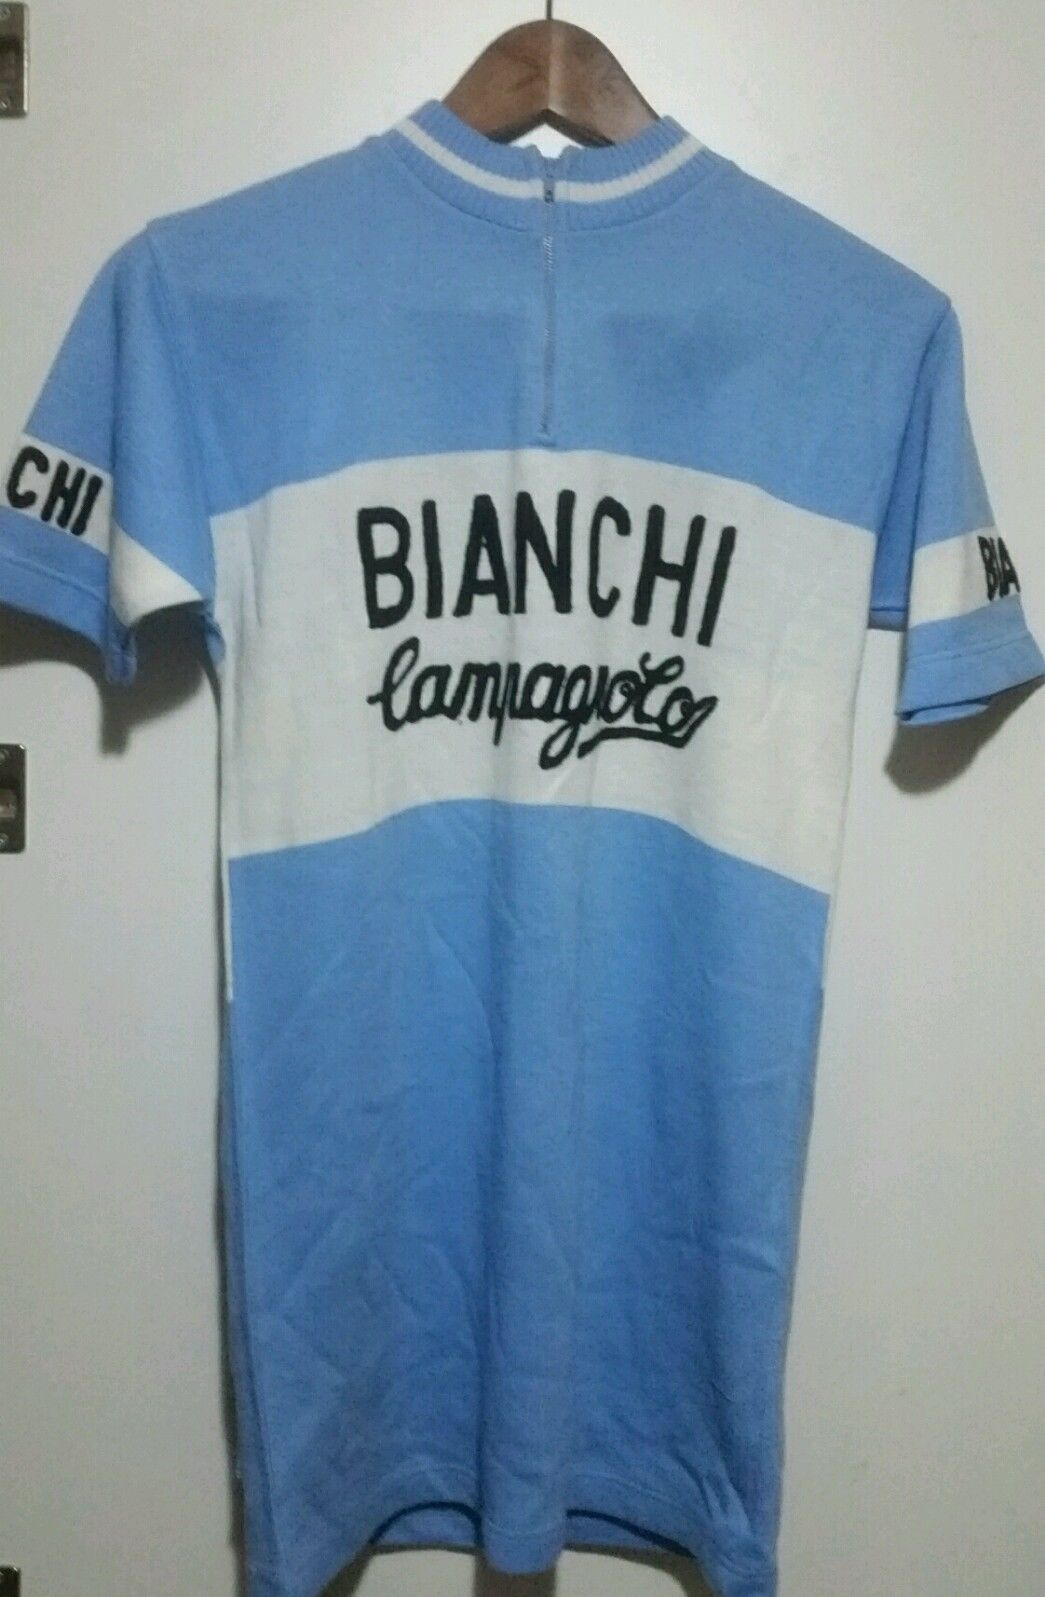 Maglia ciclista vintage 70 bianchi campagnolo Shirt jersey cyclist 70  vintage  45ad09901